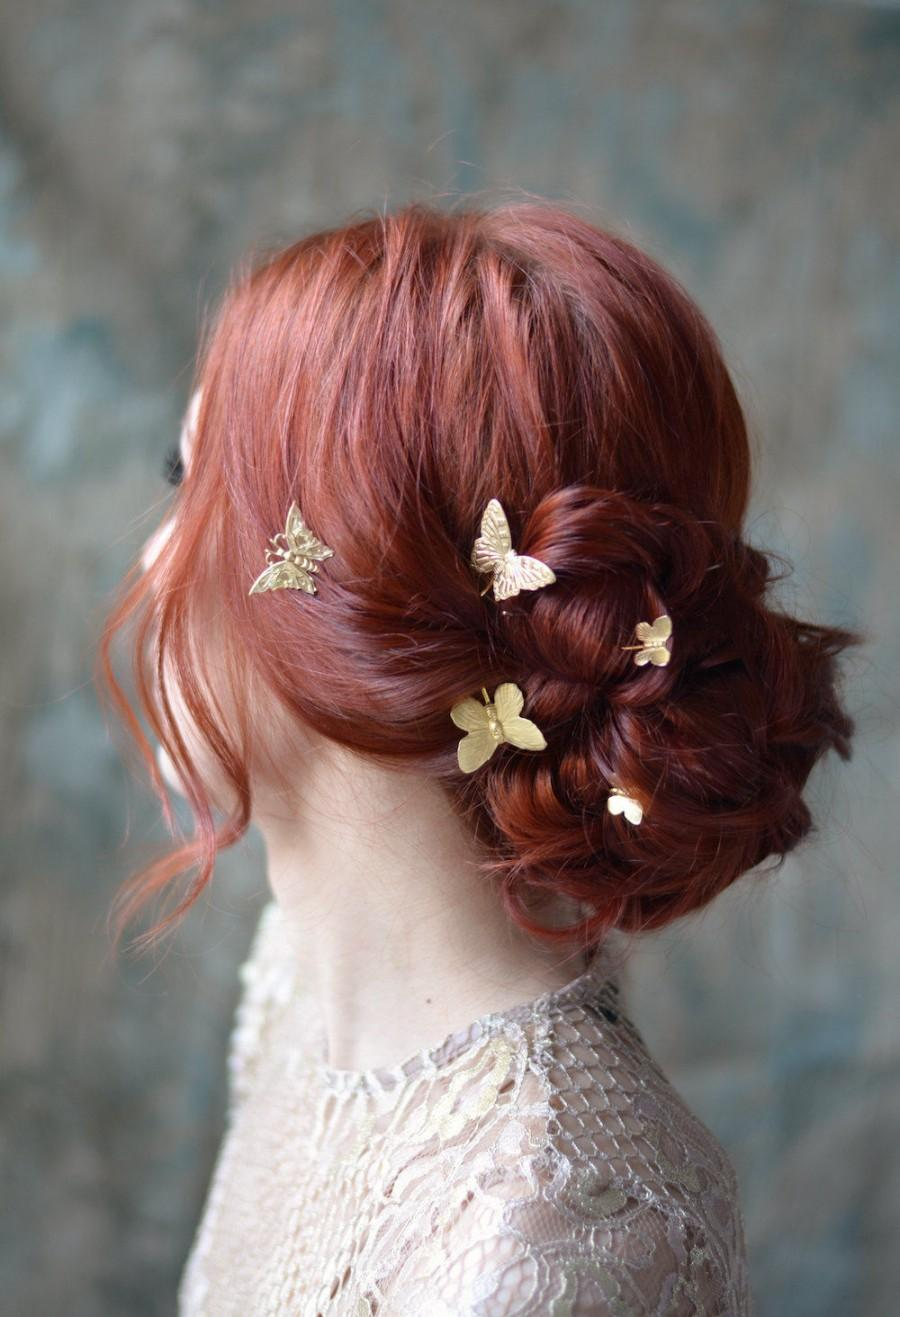 how-to-style-hair-accessories-claw-clips-butterfly-banana-mini-wedding-easy-bun-decorative.jpg